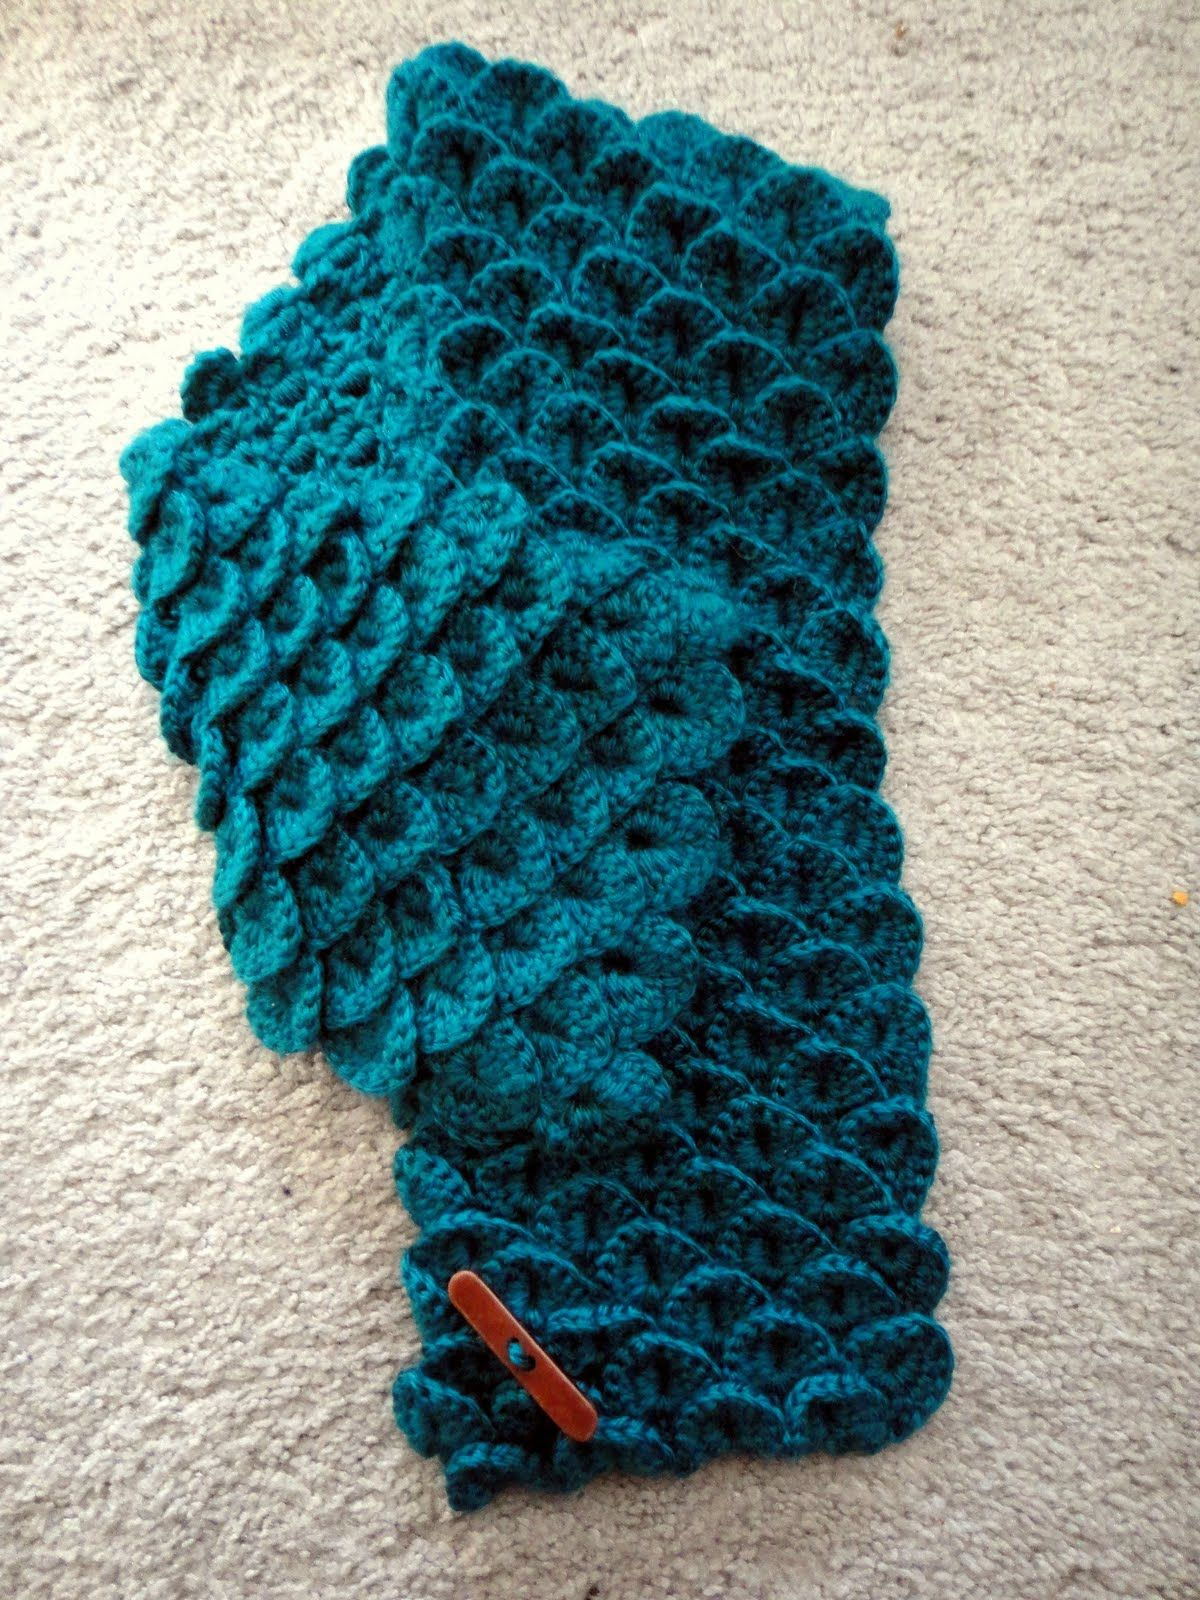 Yarn Muse: Crocodile Stitch Ah-ha! a place to get the stitch pattern ...